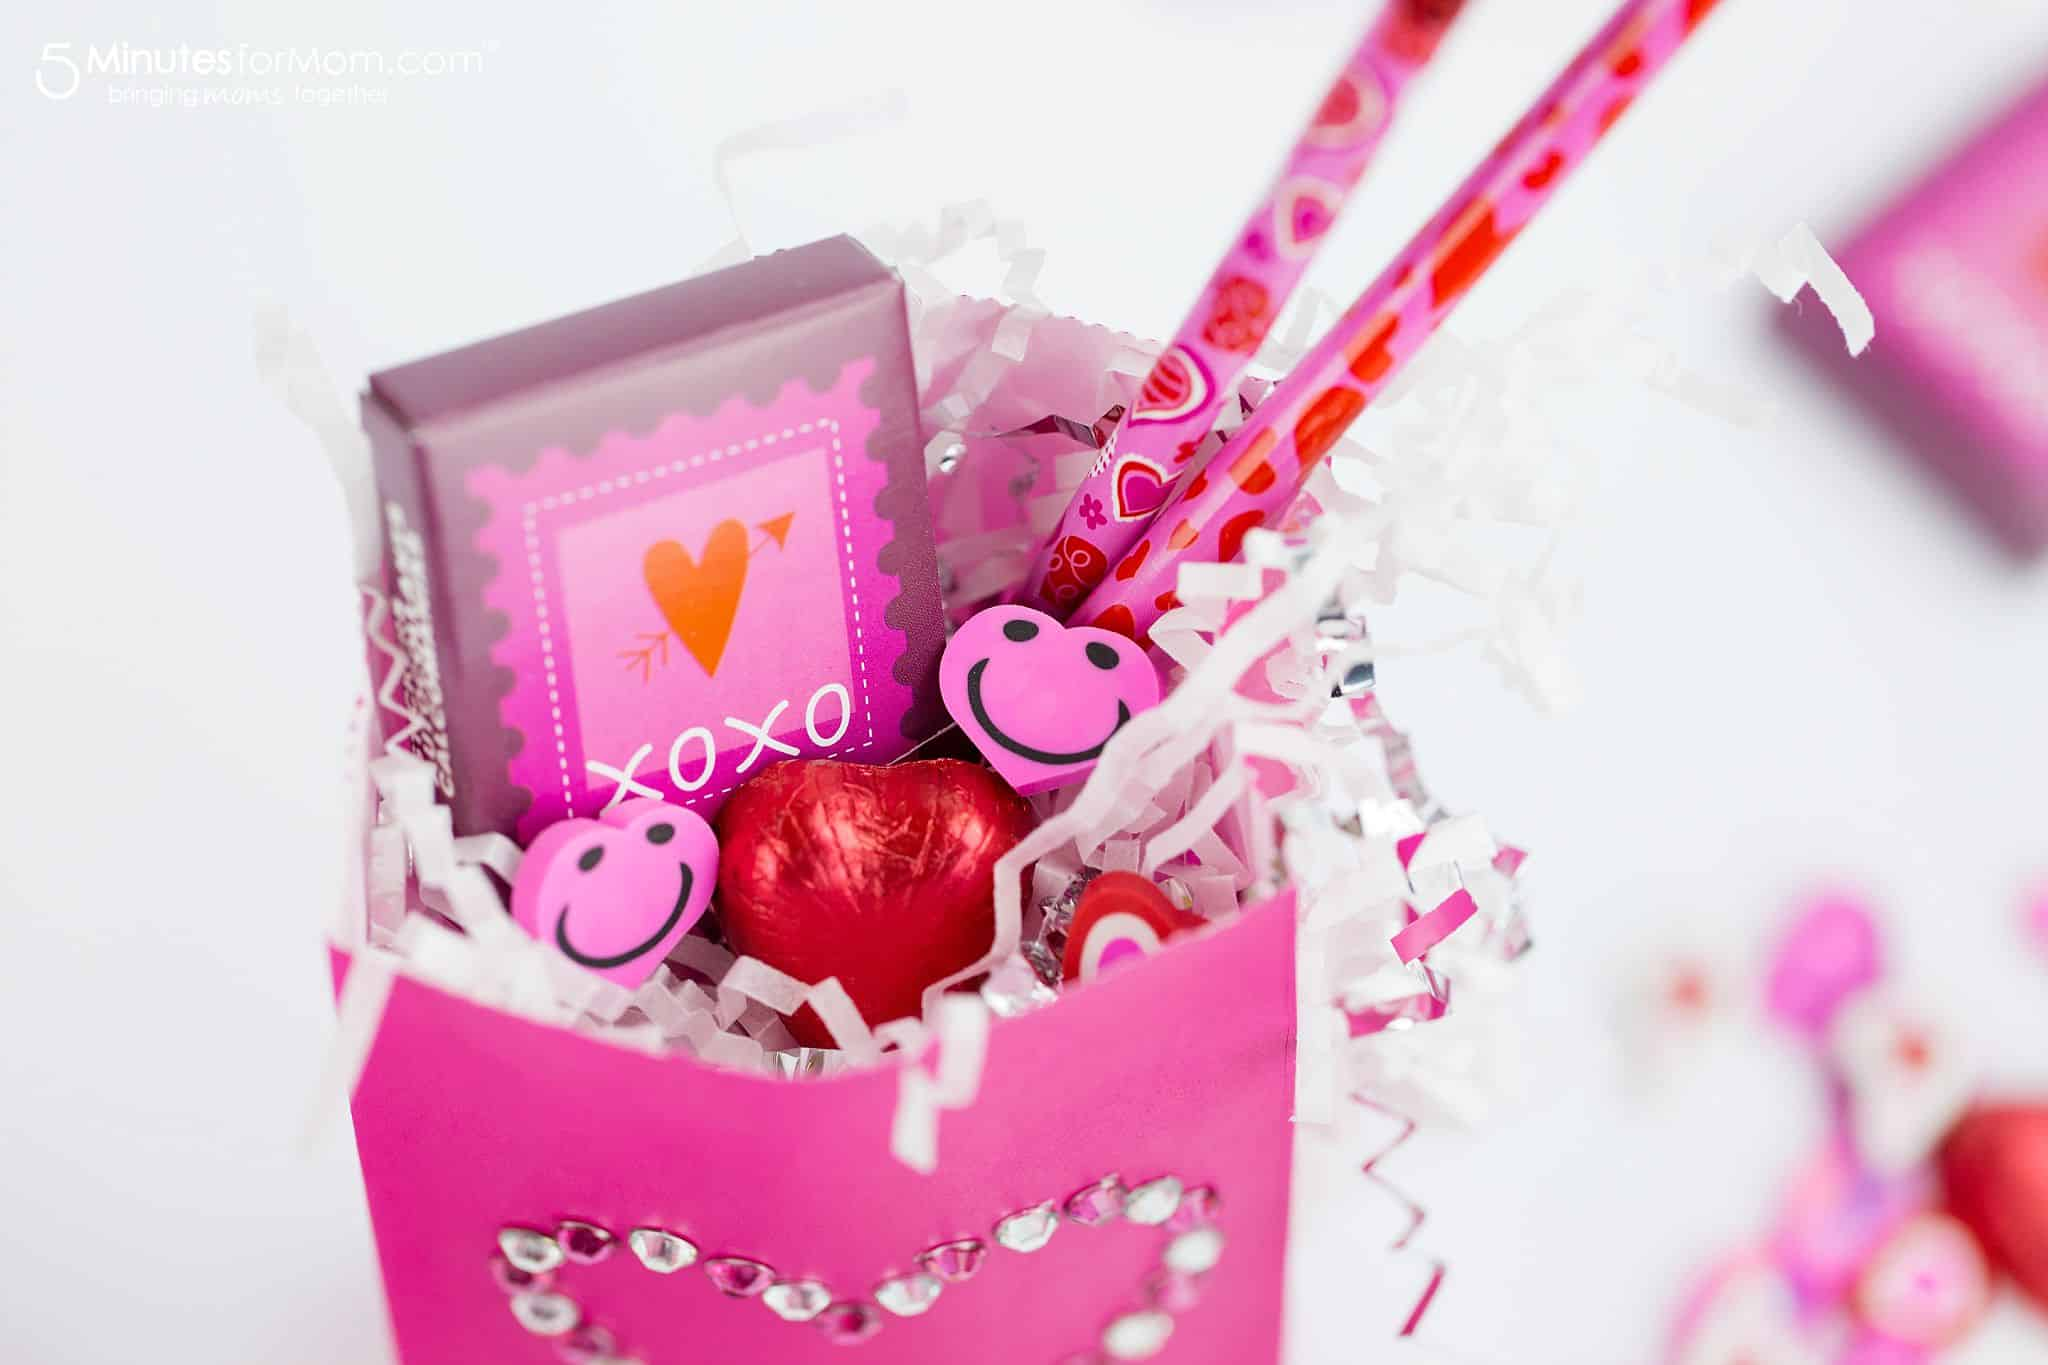 Fast And Easy Dollar Store Valentine Ideas 5 Minutes For Mom